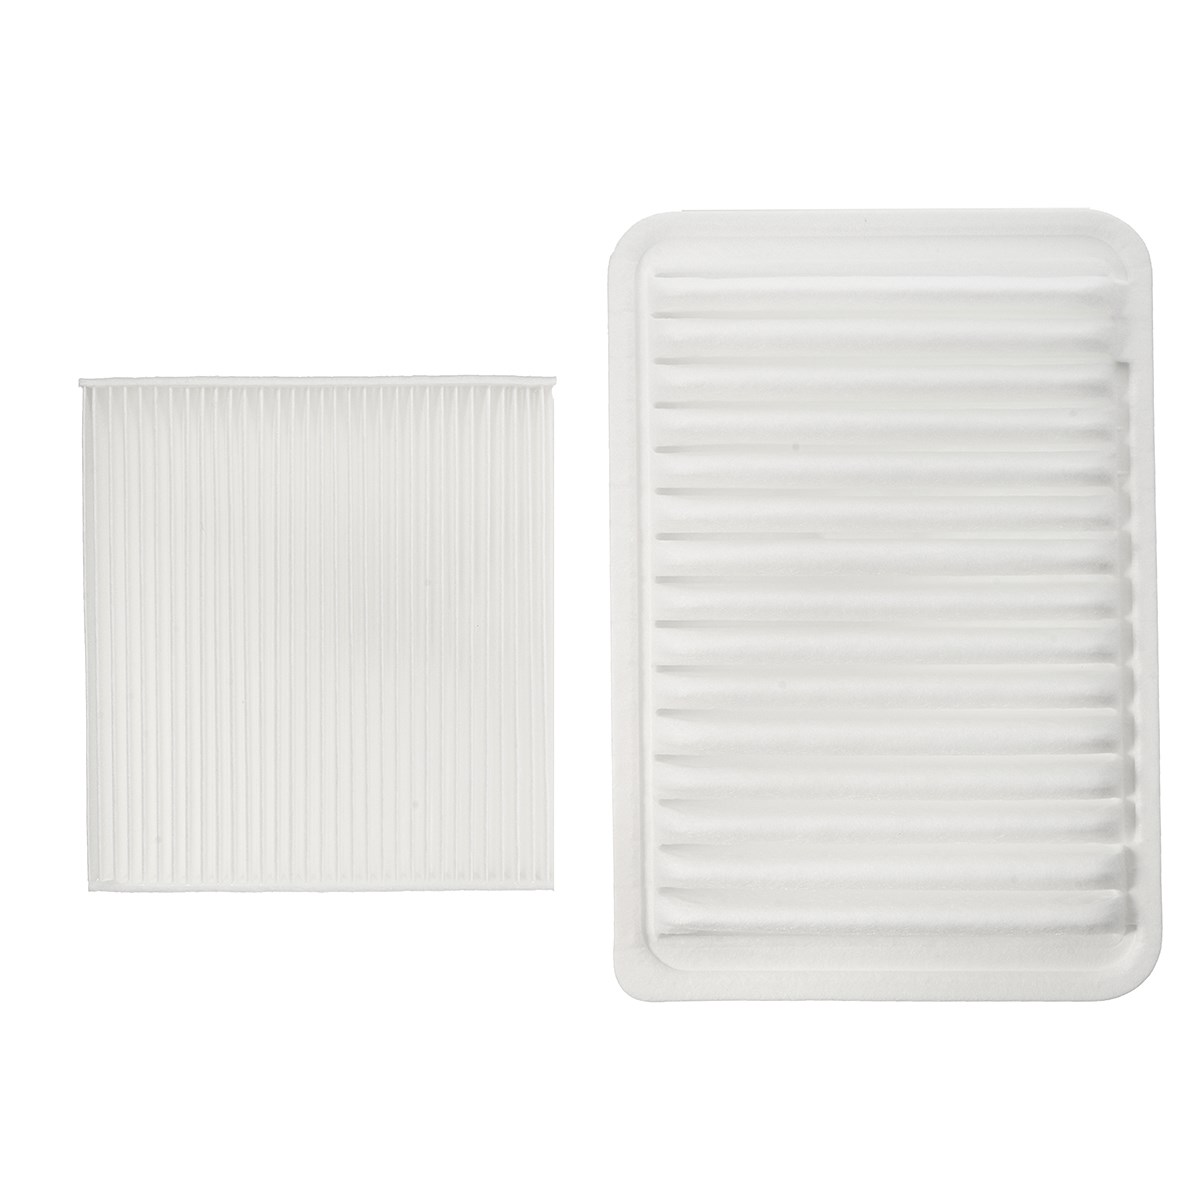 2 pcs set car engine cabin air filter for toyota camry venza